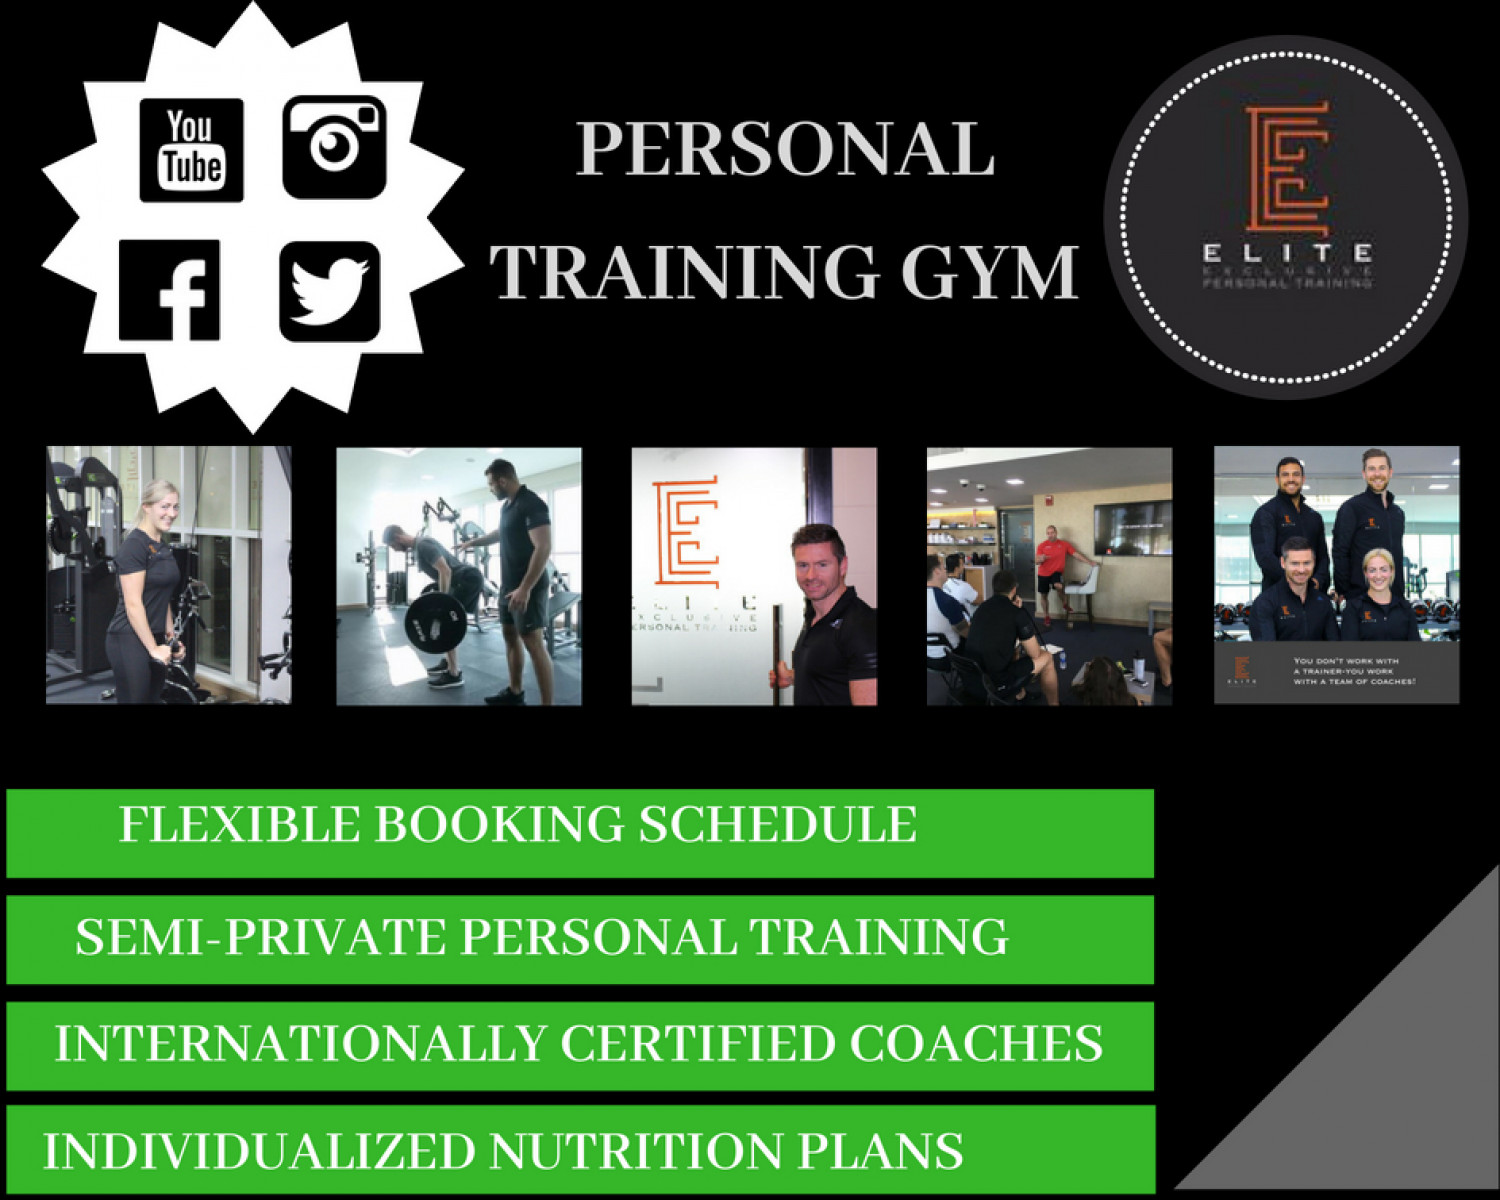 Personal Training Gyms near me Infographic